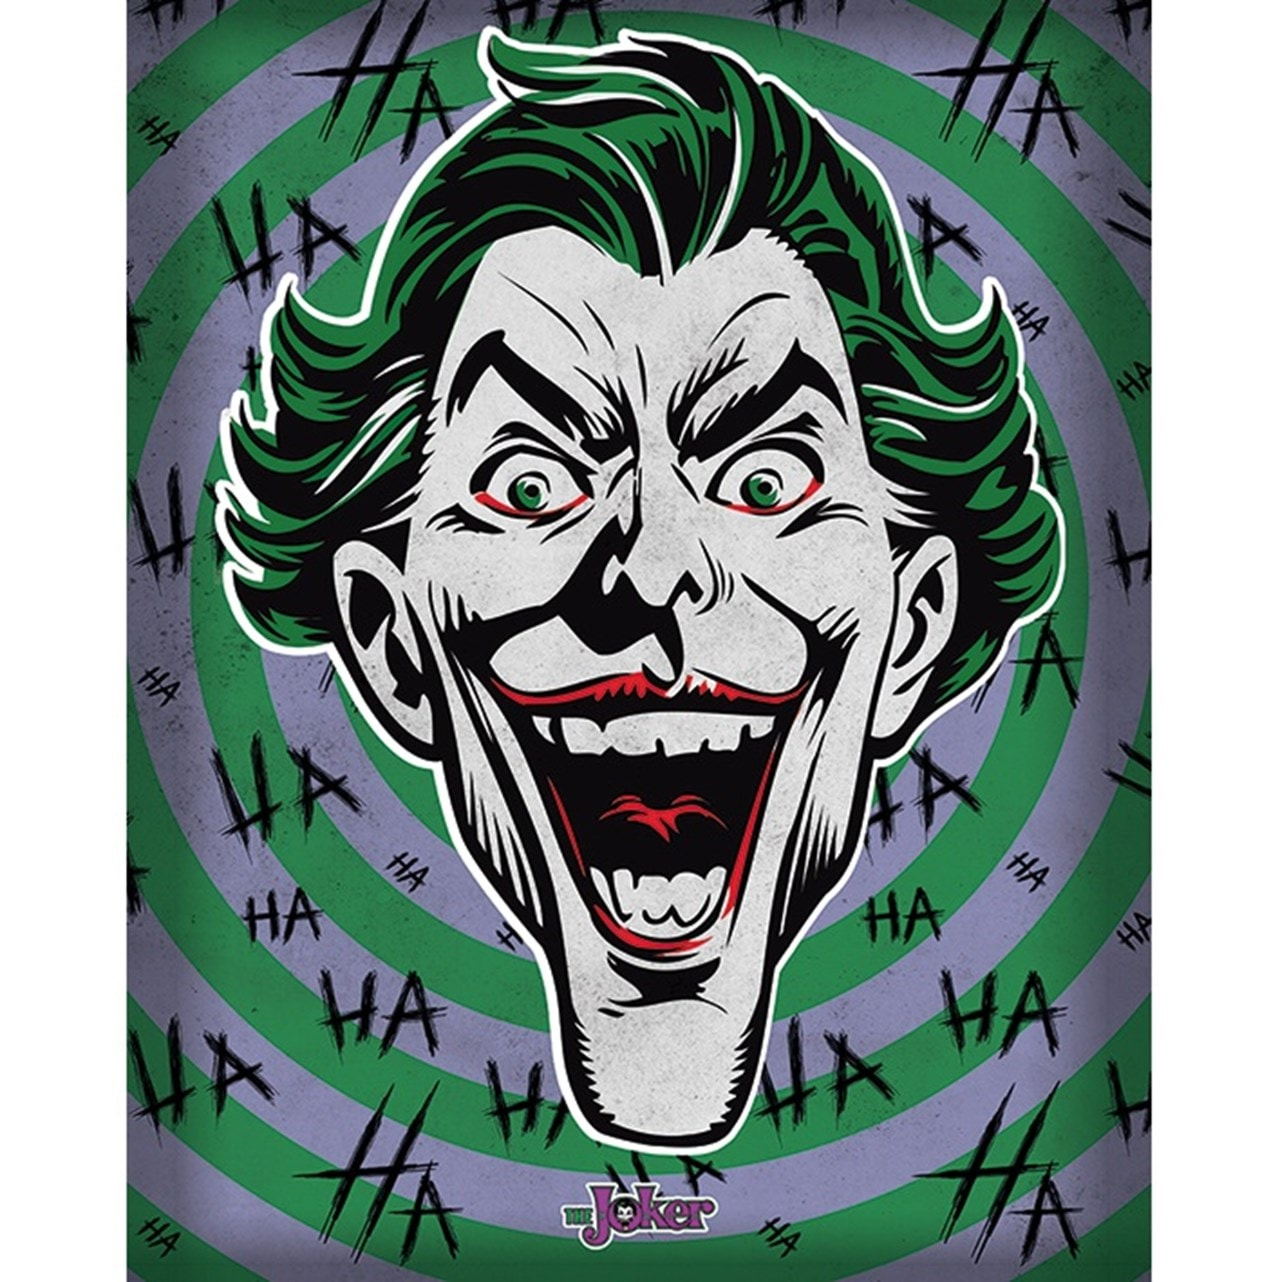 The Joker: Hahaha Canvas Print - 1